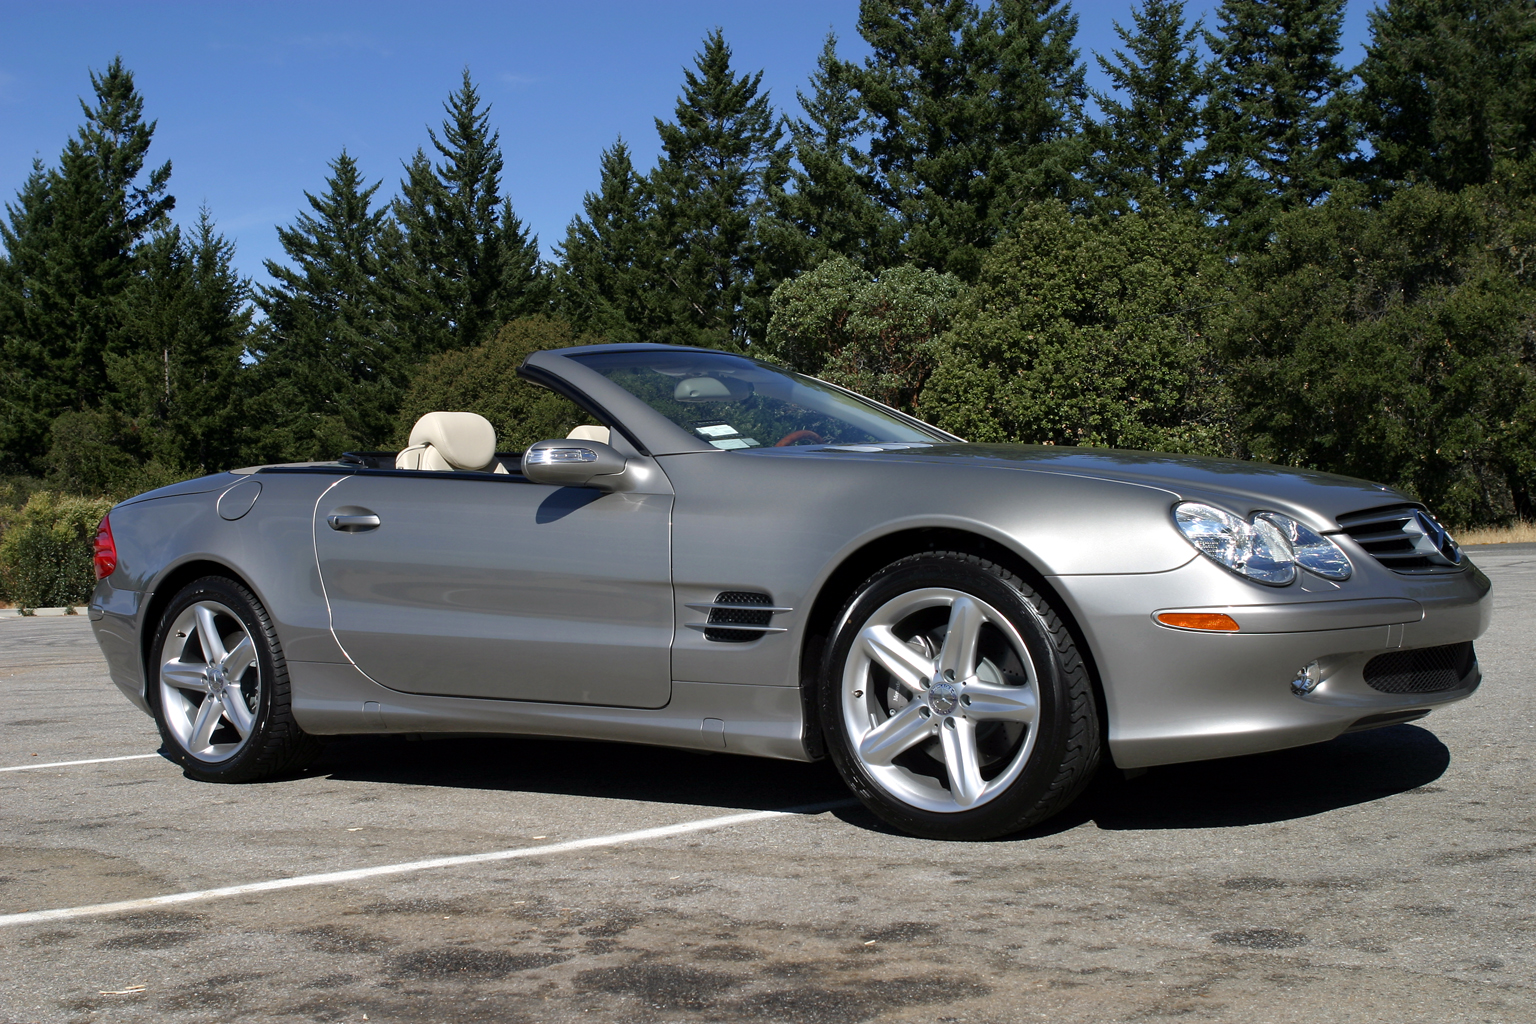 2006 mercedes benz sl class other pictures cargurus for Mercedes benz sl class sl500